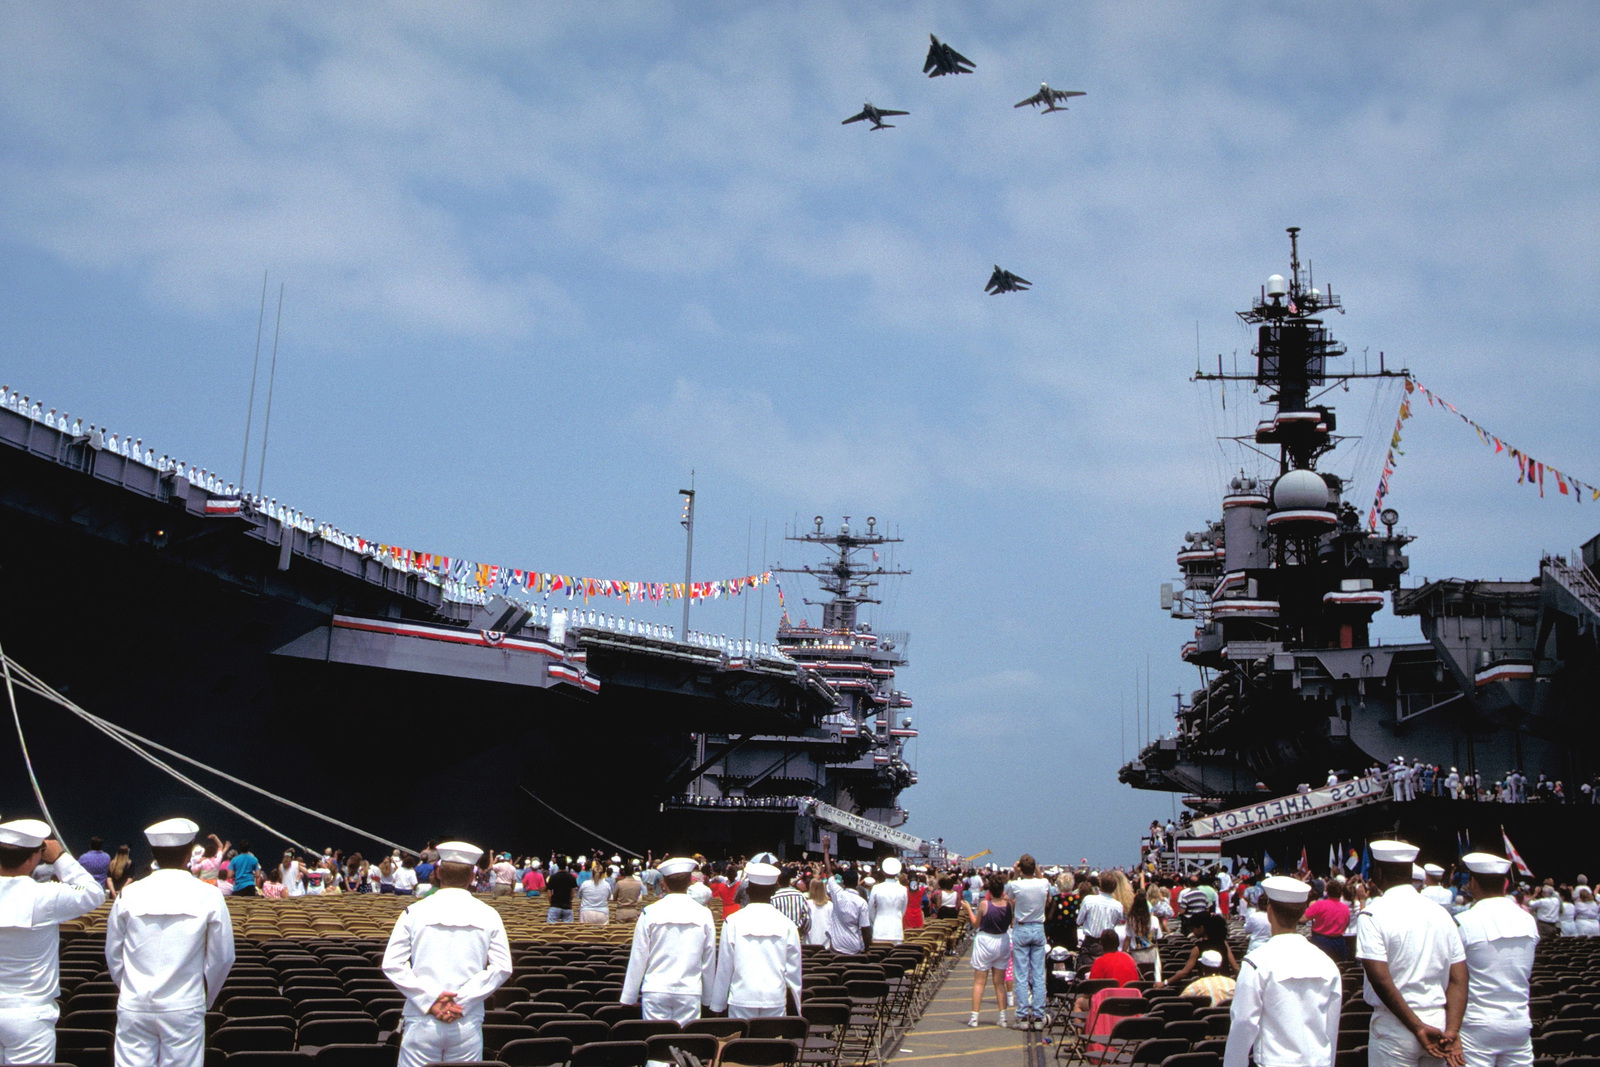 Crew members aboard the nuclear-powered aircraft carrier USS GEORGE WASHINGTON (CVN-73), right, and the aircraft carrier USS AMERICA (CV-66) watch a flyover being conducted in honor of the GEORGE WASHINGTON's commissioning. F-14A Tomcat and A-6E Intruder aircraft are taking part in the flyover